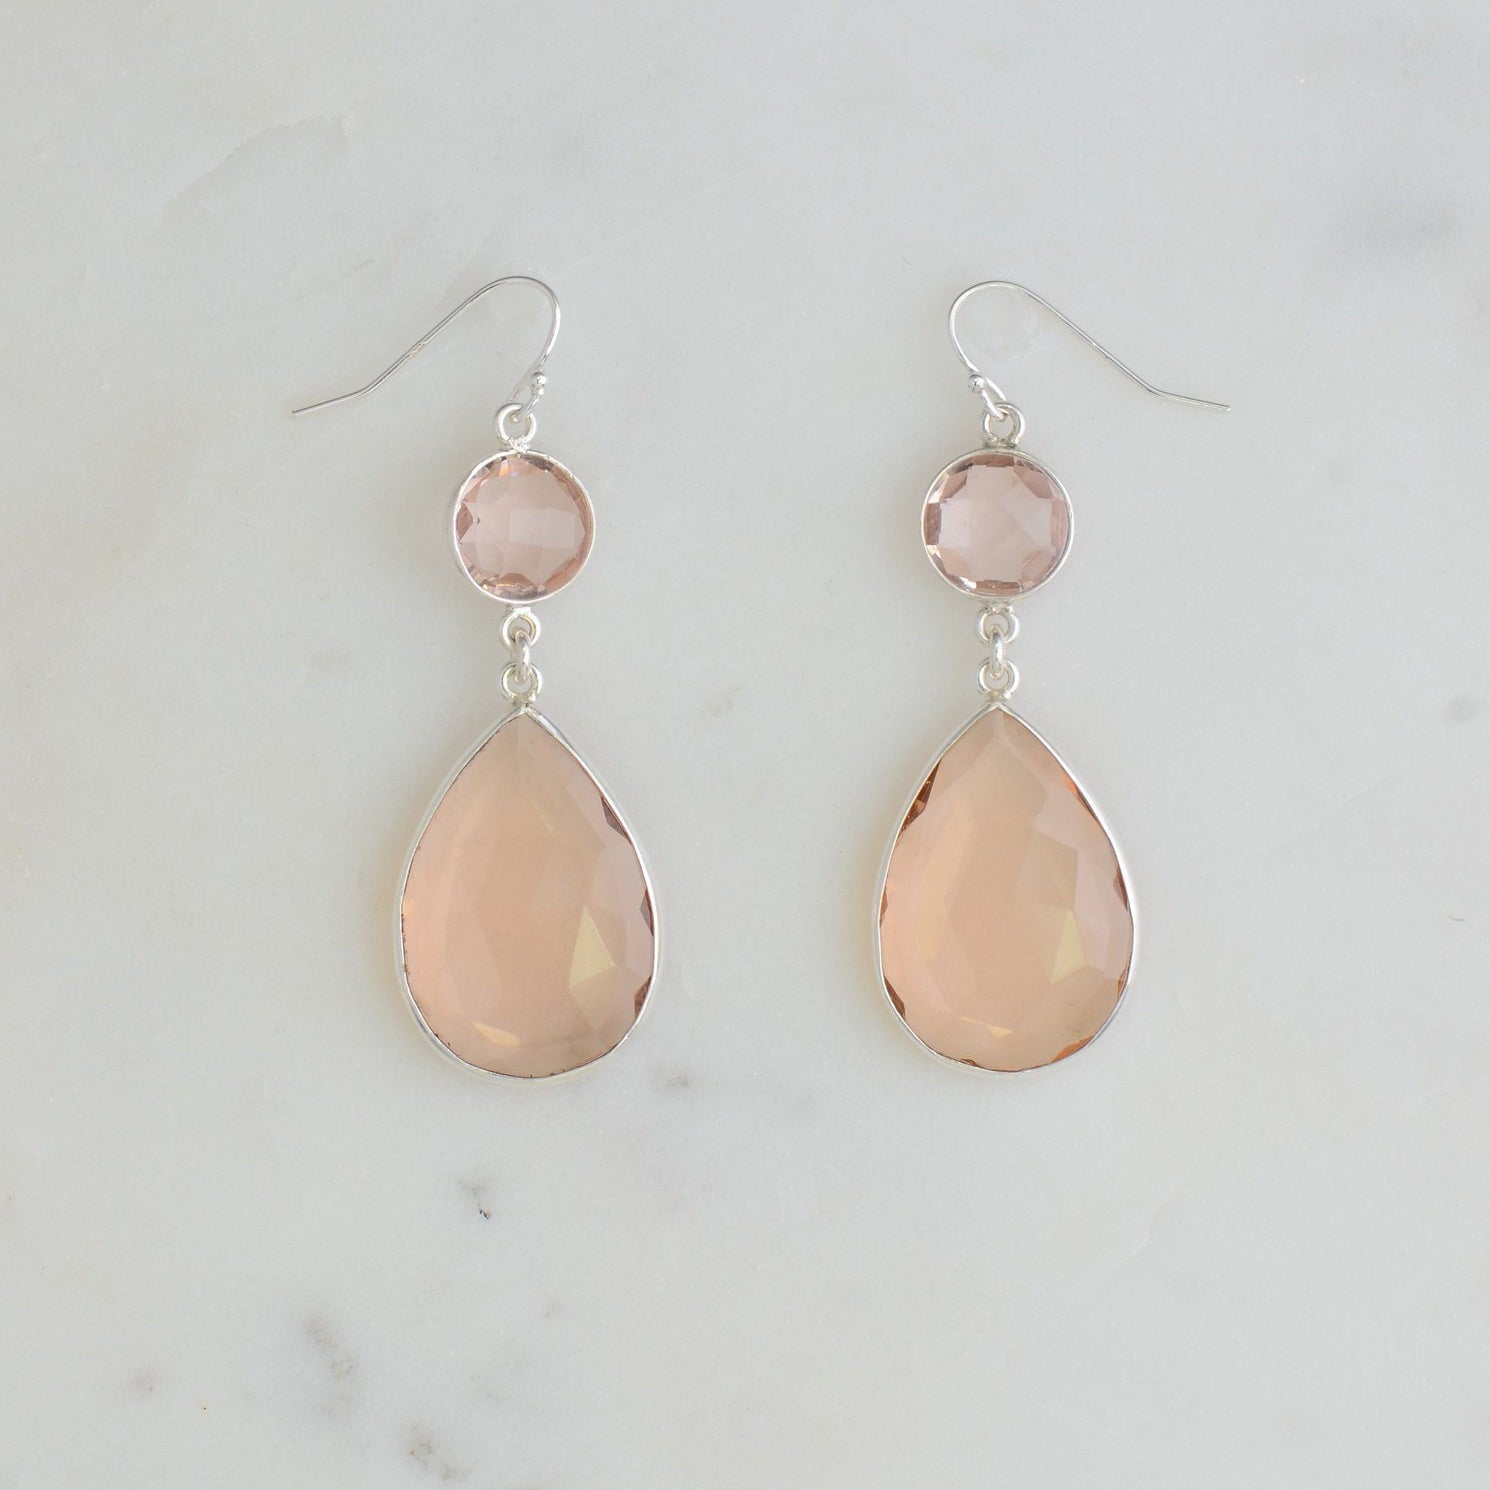 Morganite Quartz Earring, Blush Earring, Wedding earring, Sterling Silver earring, Two tier Earring, Dangling Earring, Bridal Earring